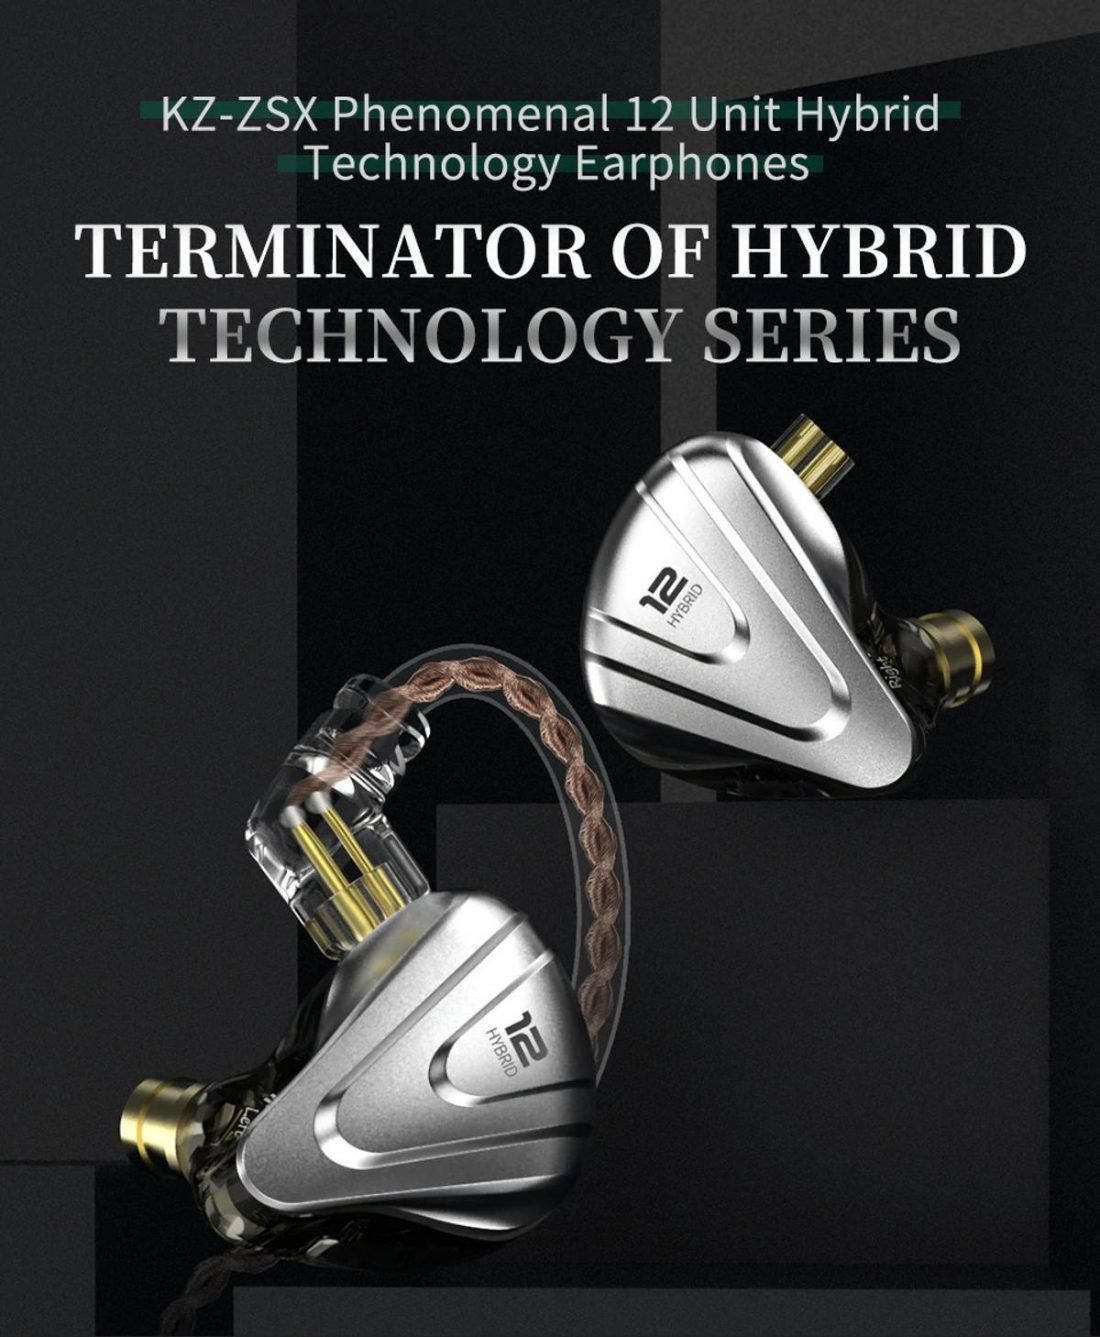 The terminator of hybrid technology series.